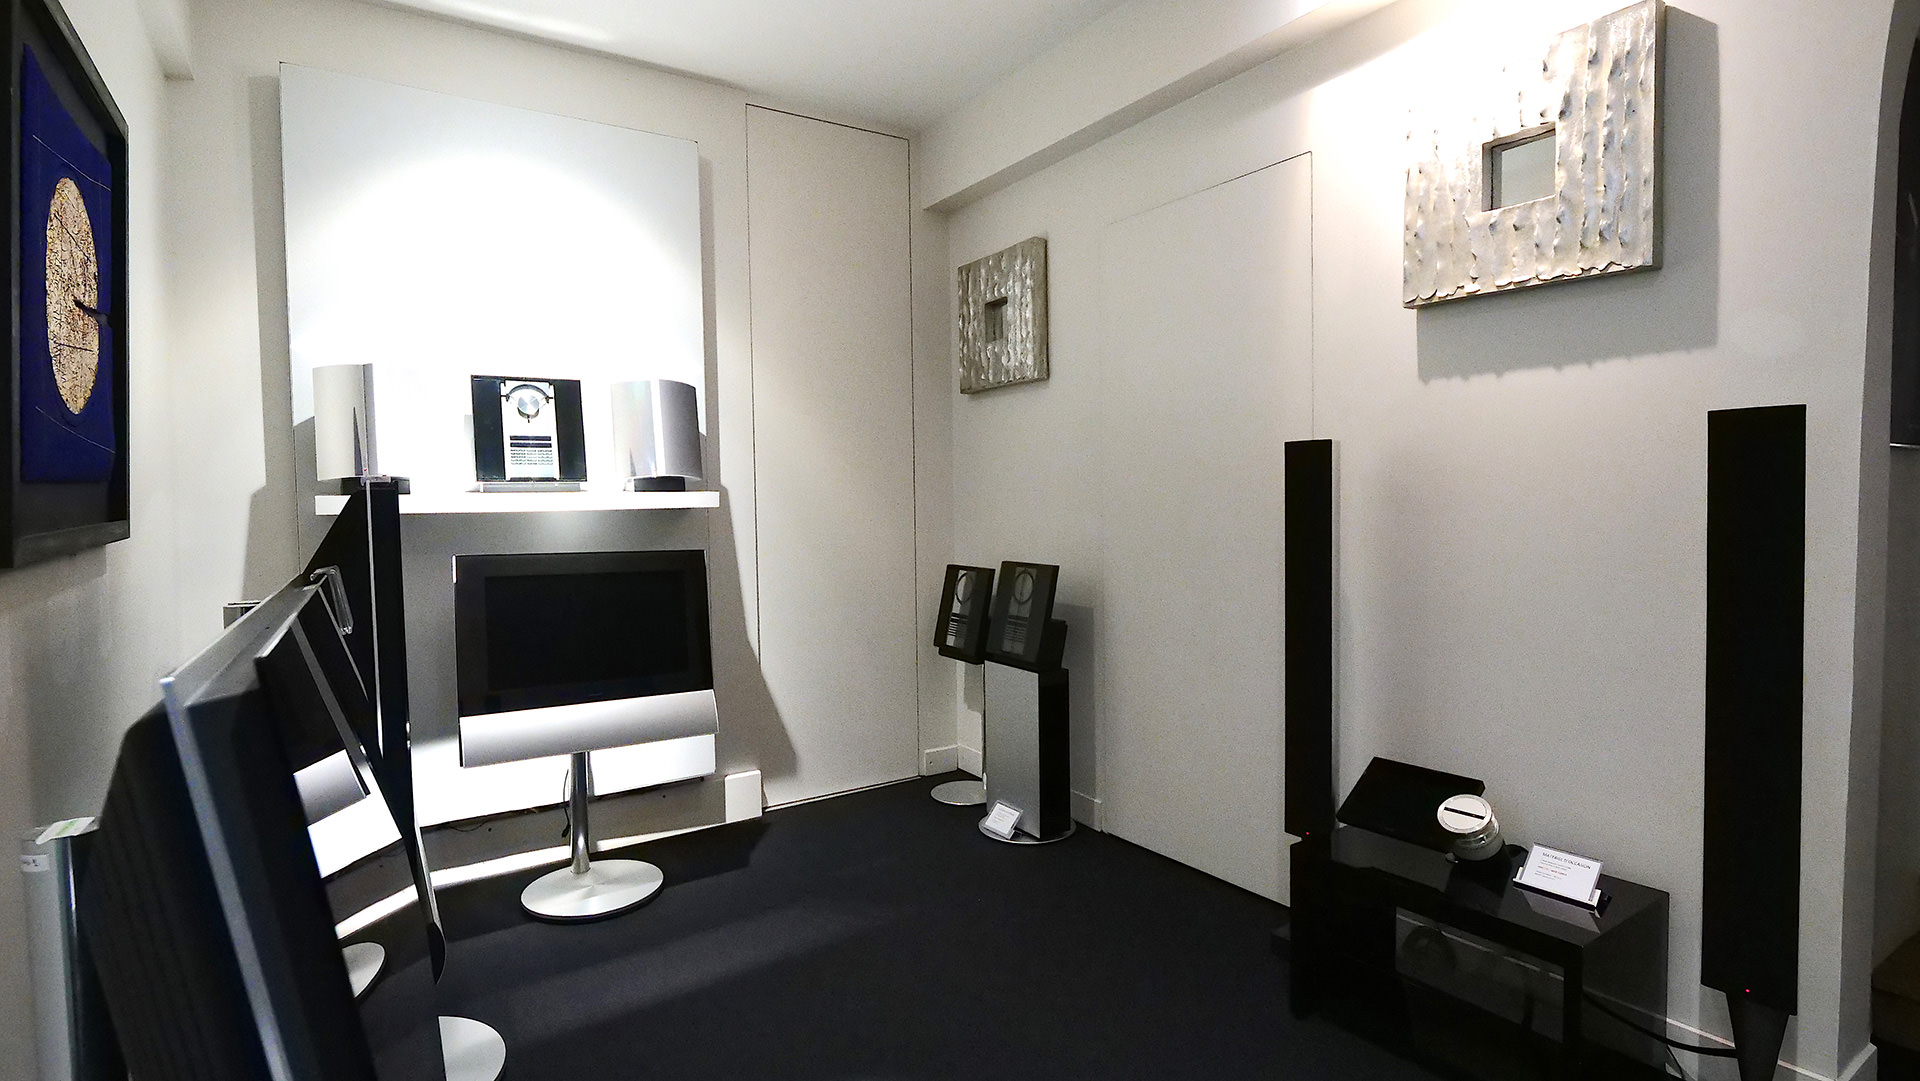 nos showrooms paris bang olufsen devialet sonos loewe. Black Bedroom Furniture Sets. Home Design Ideas